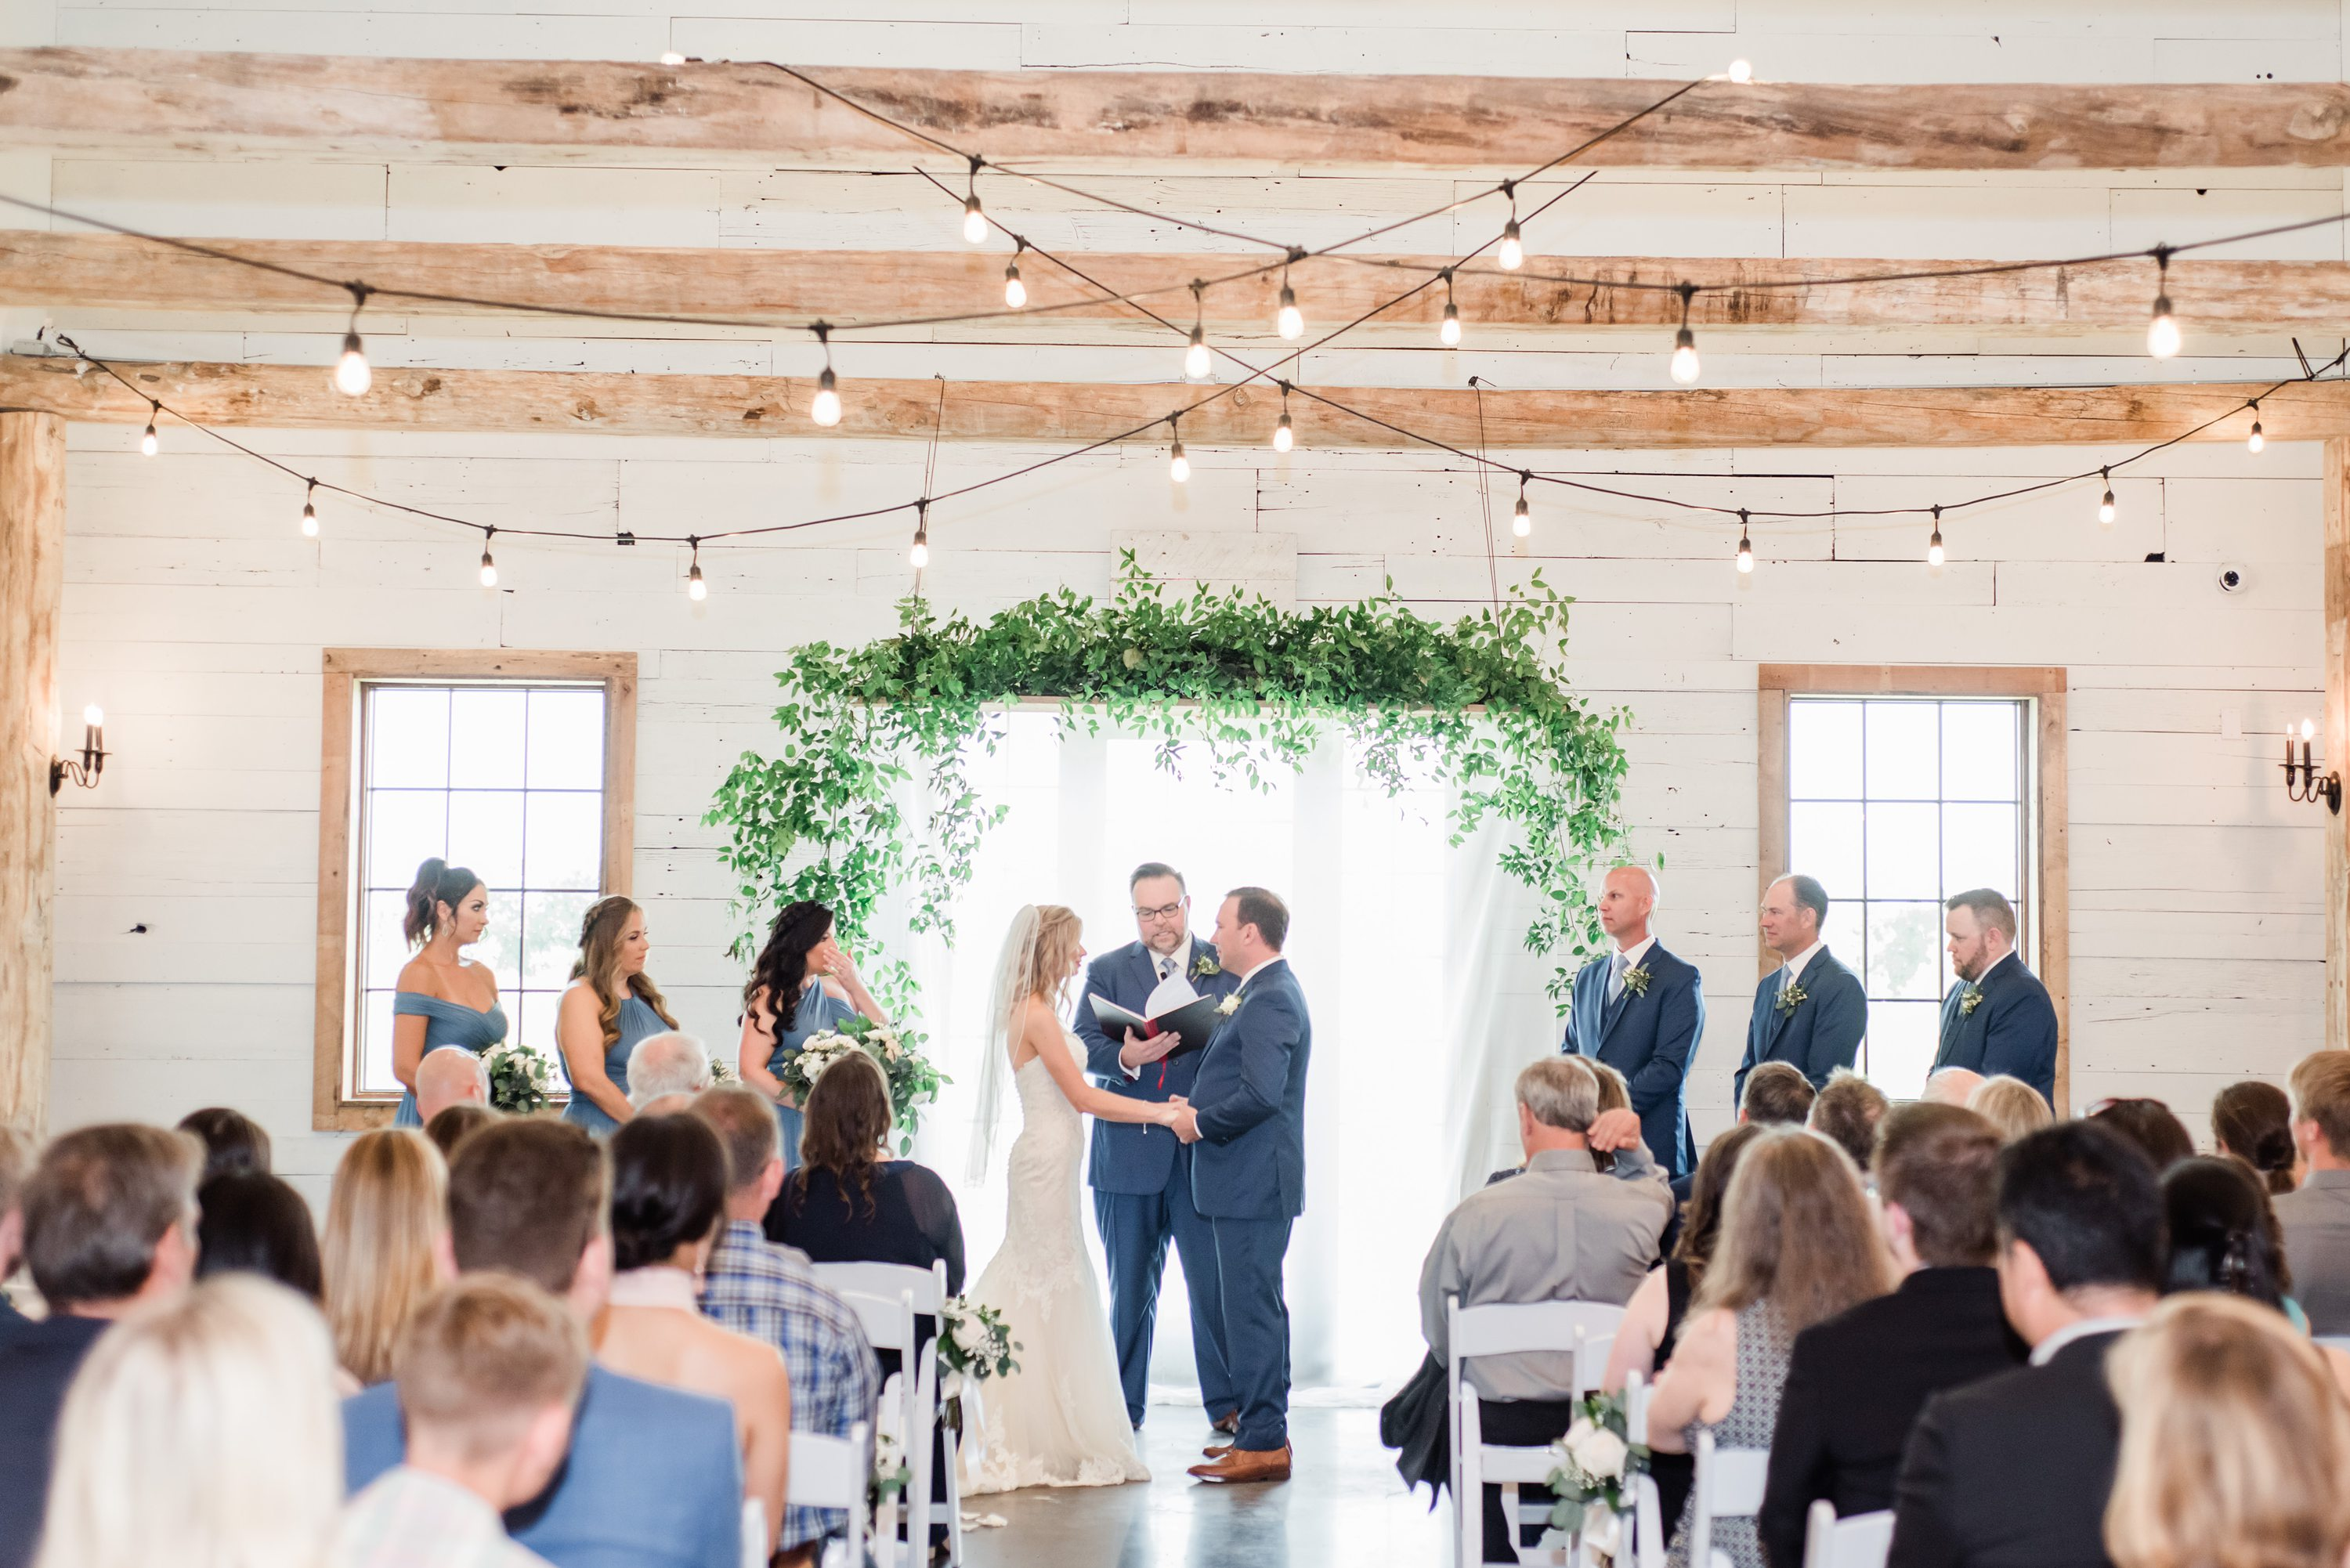 Houston Wedding Photography, especially when Travis cried seeing his bride for the first time. Their reception decor was absolutely stunning